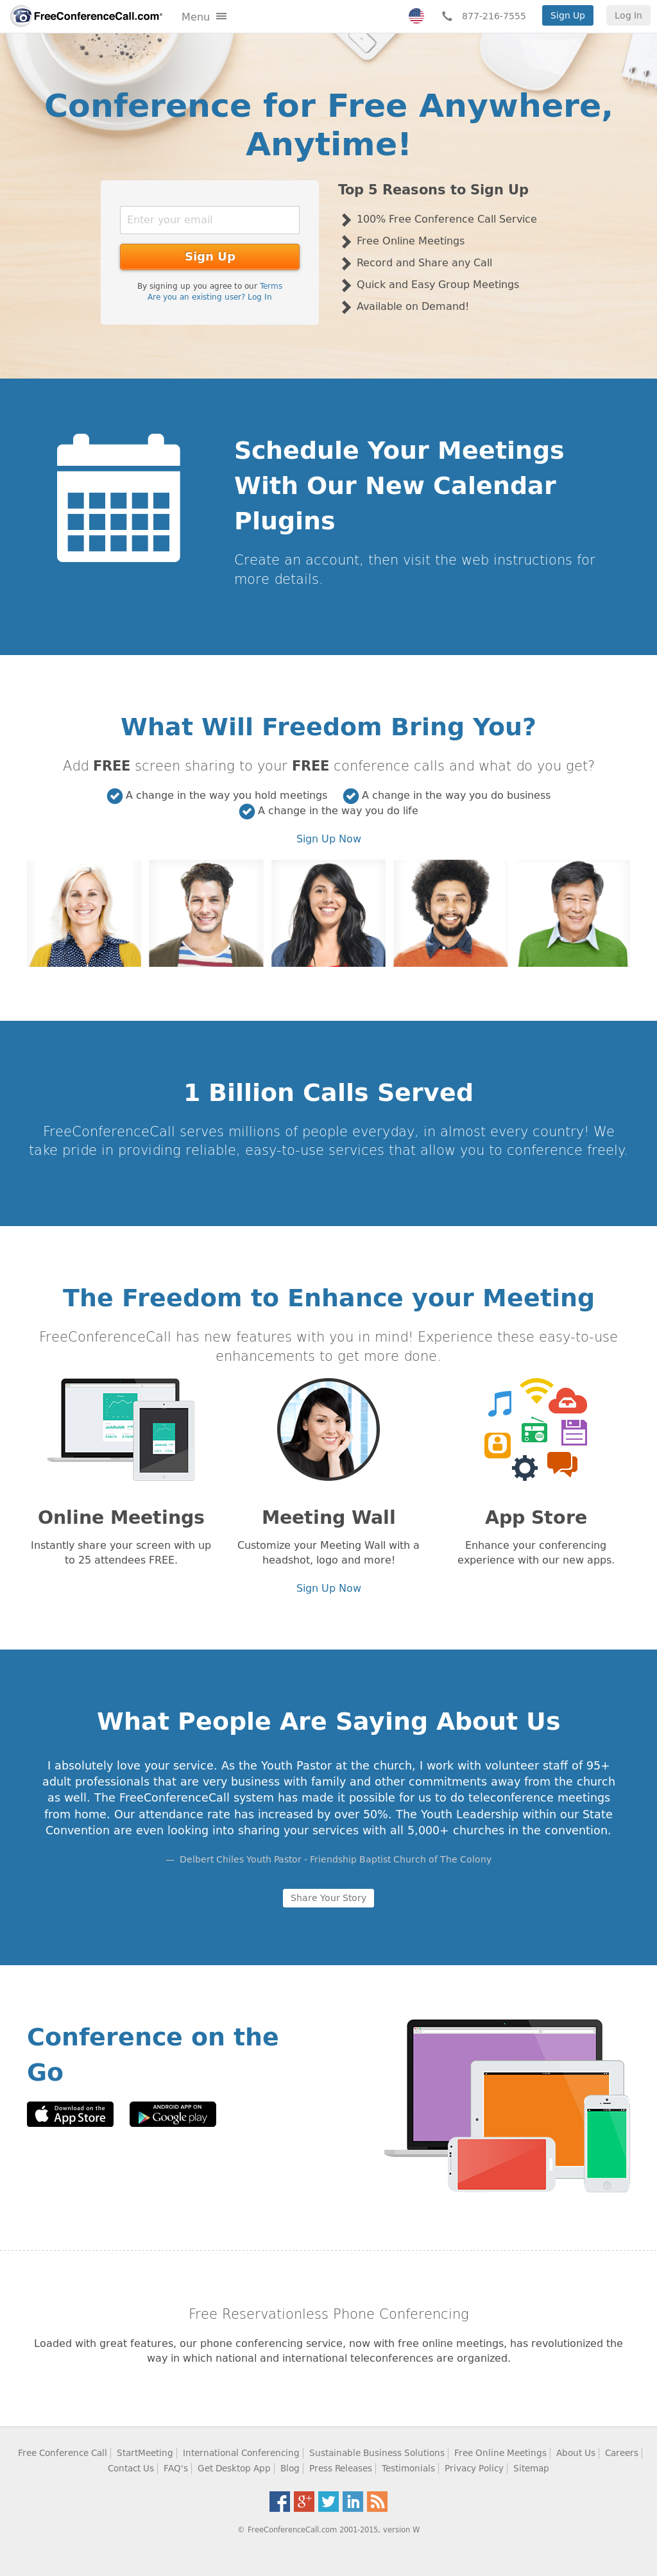 FreeConferenceCall Competitors, Revenue and Employees